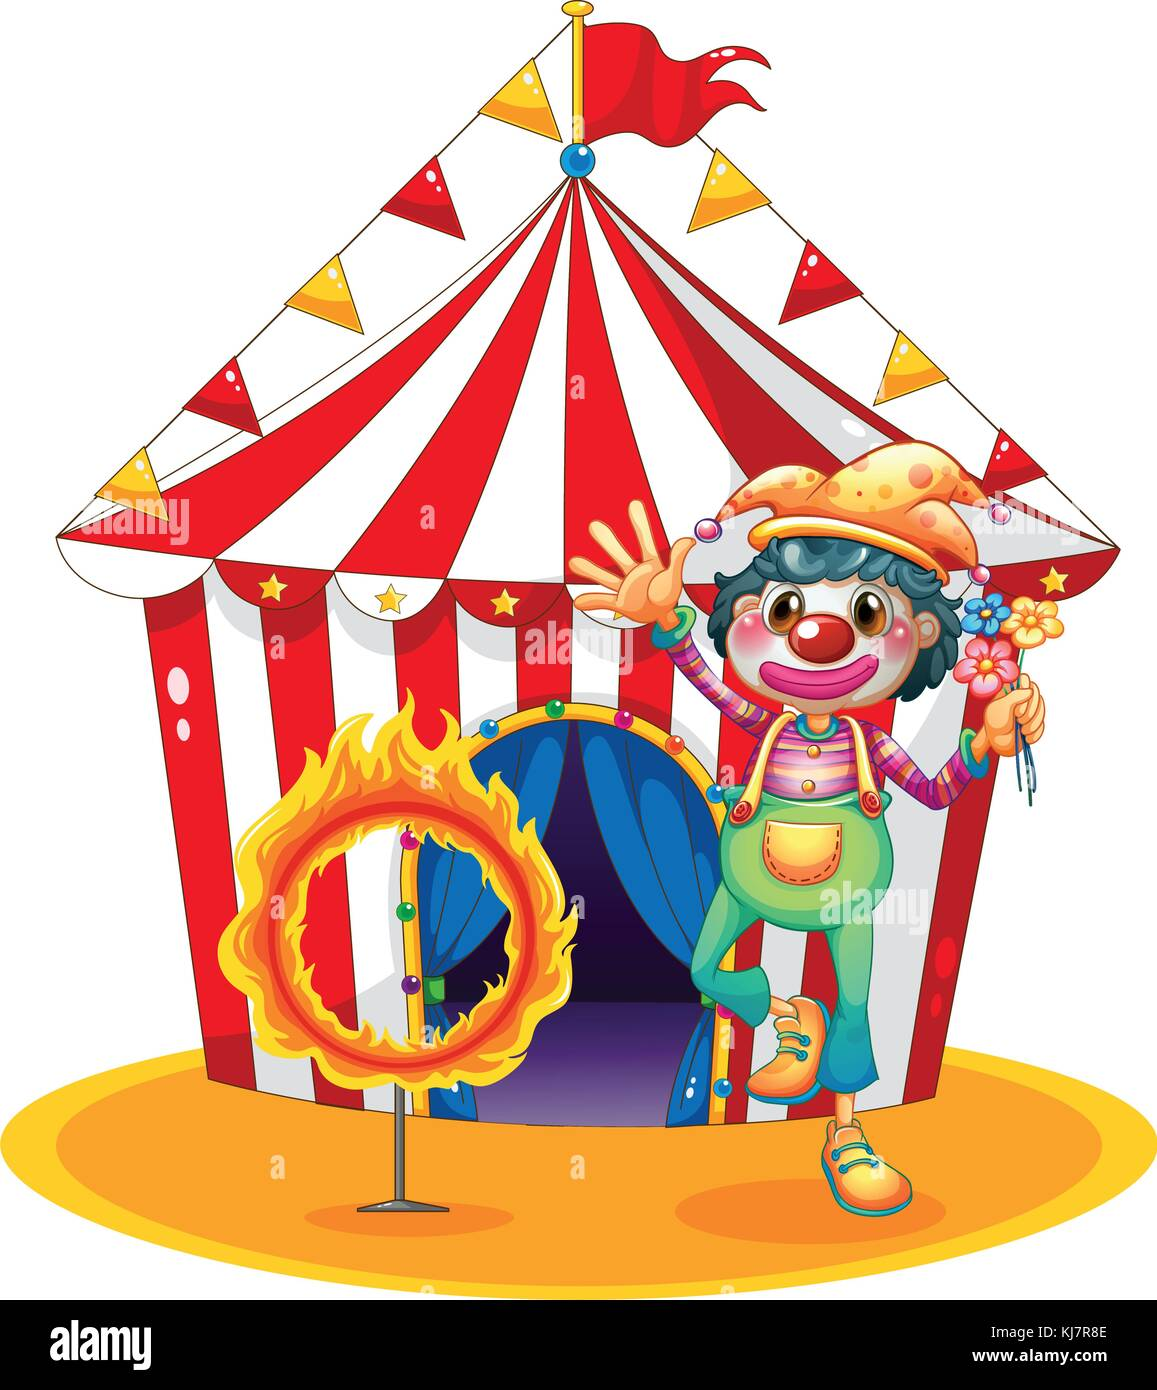 Illustration of a ring of fire and a clown in front of a circus tent on a white background - Stock Image